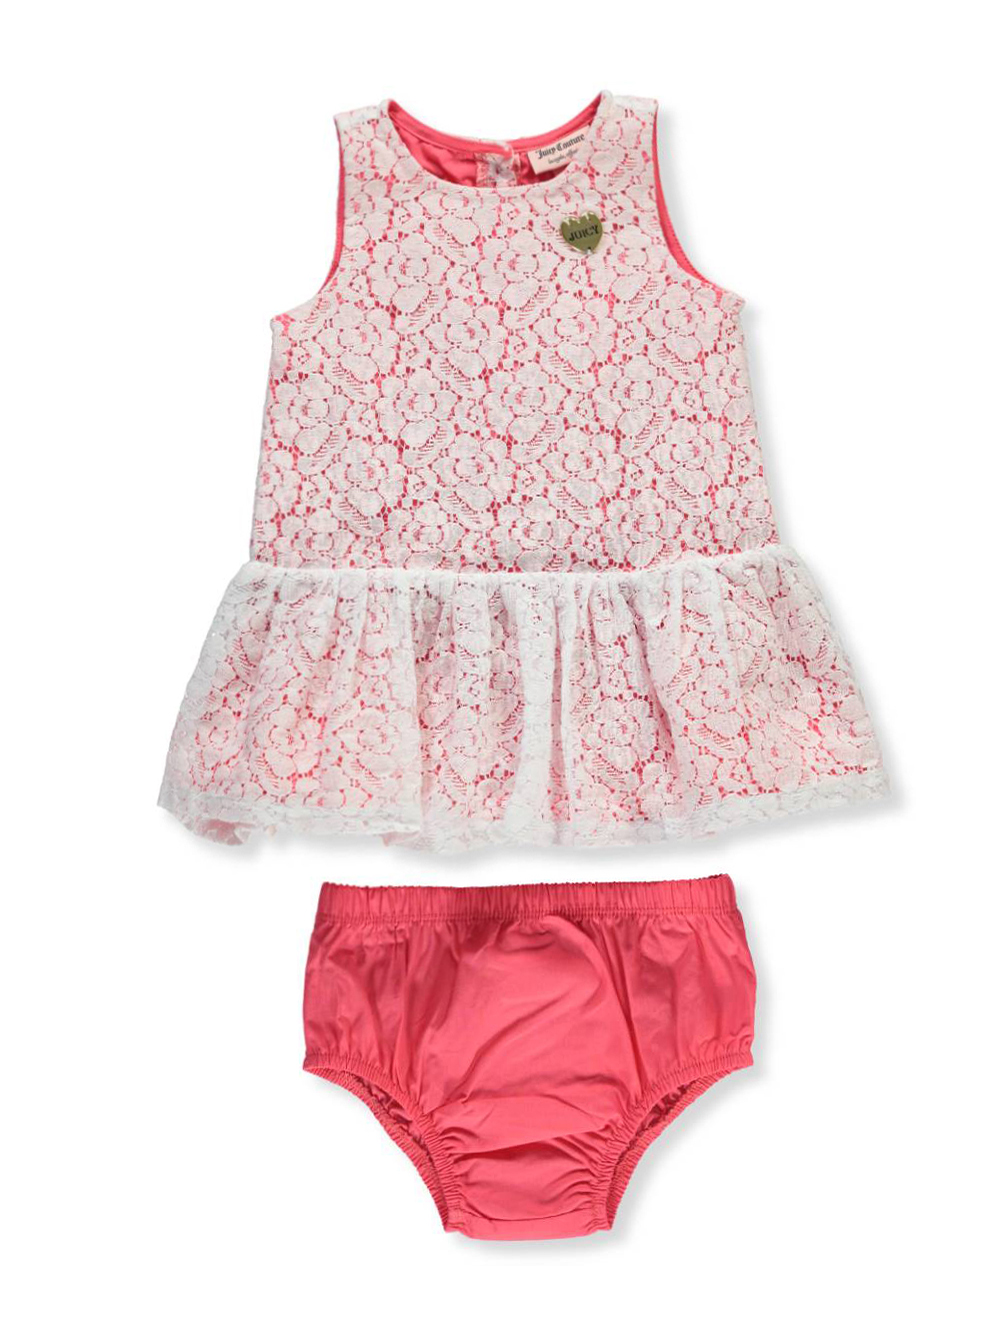 68e963adc Juicy Couture Baby Girls' Dress with Diaper Cover | eBay